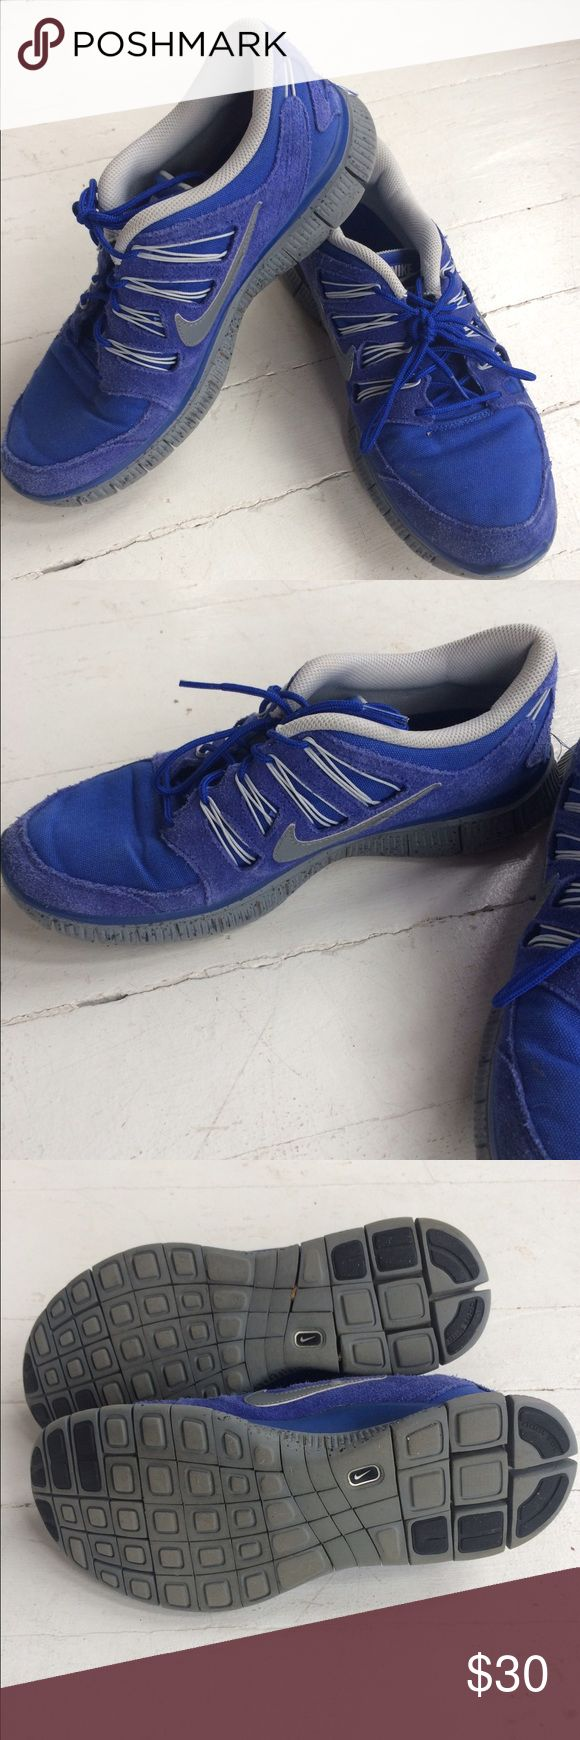 25+ best Nike nsw ideas on Pinterest | Site chaussures, Mode femme ...